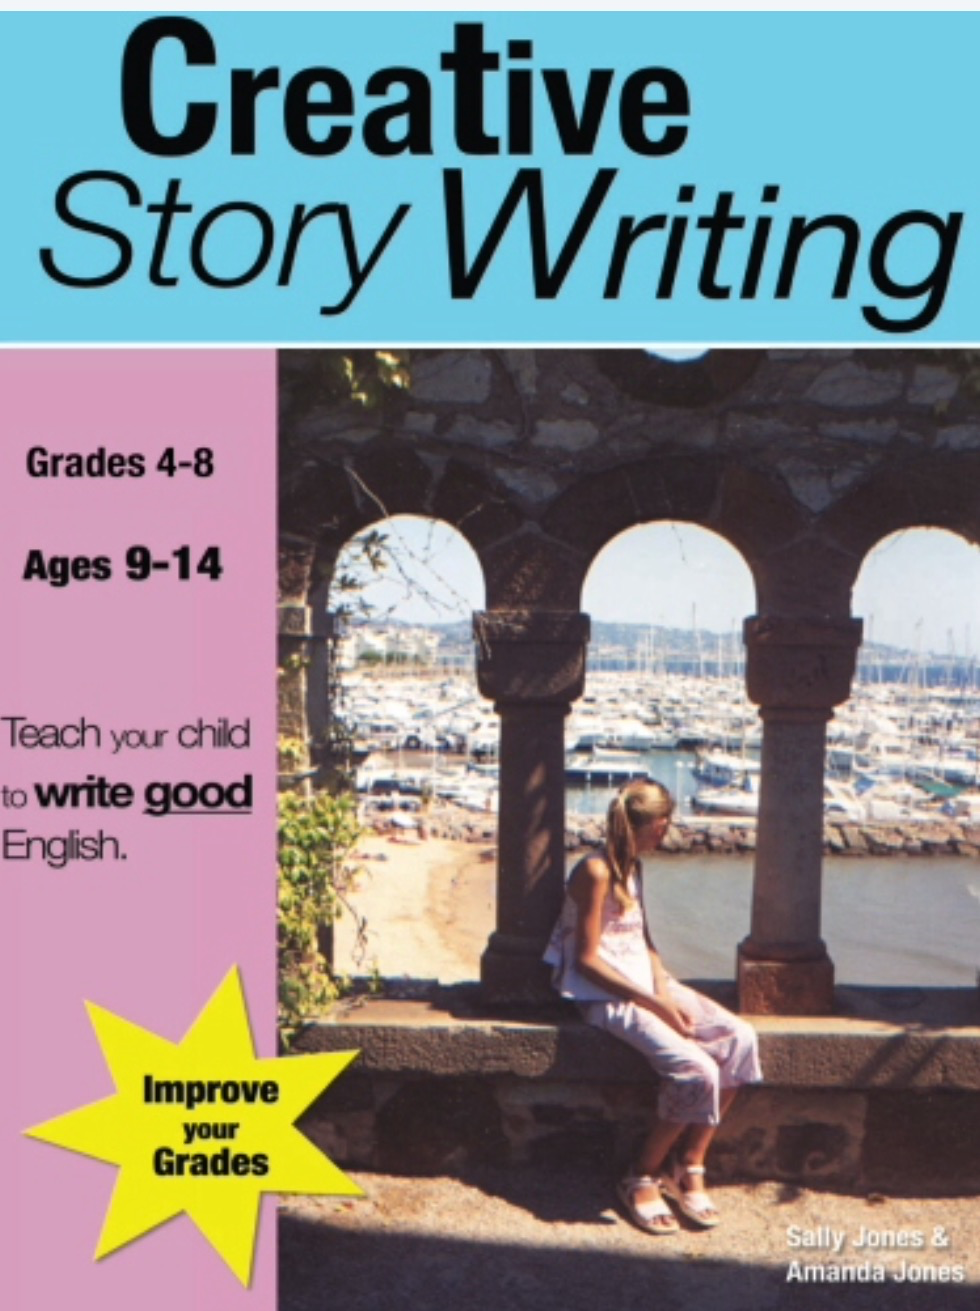 Creative Story Writing (US English Edition) Grades 4-8